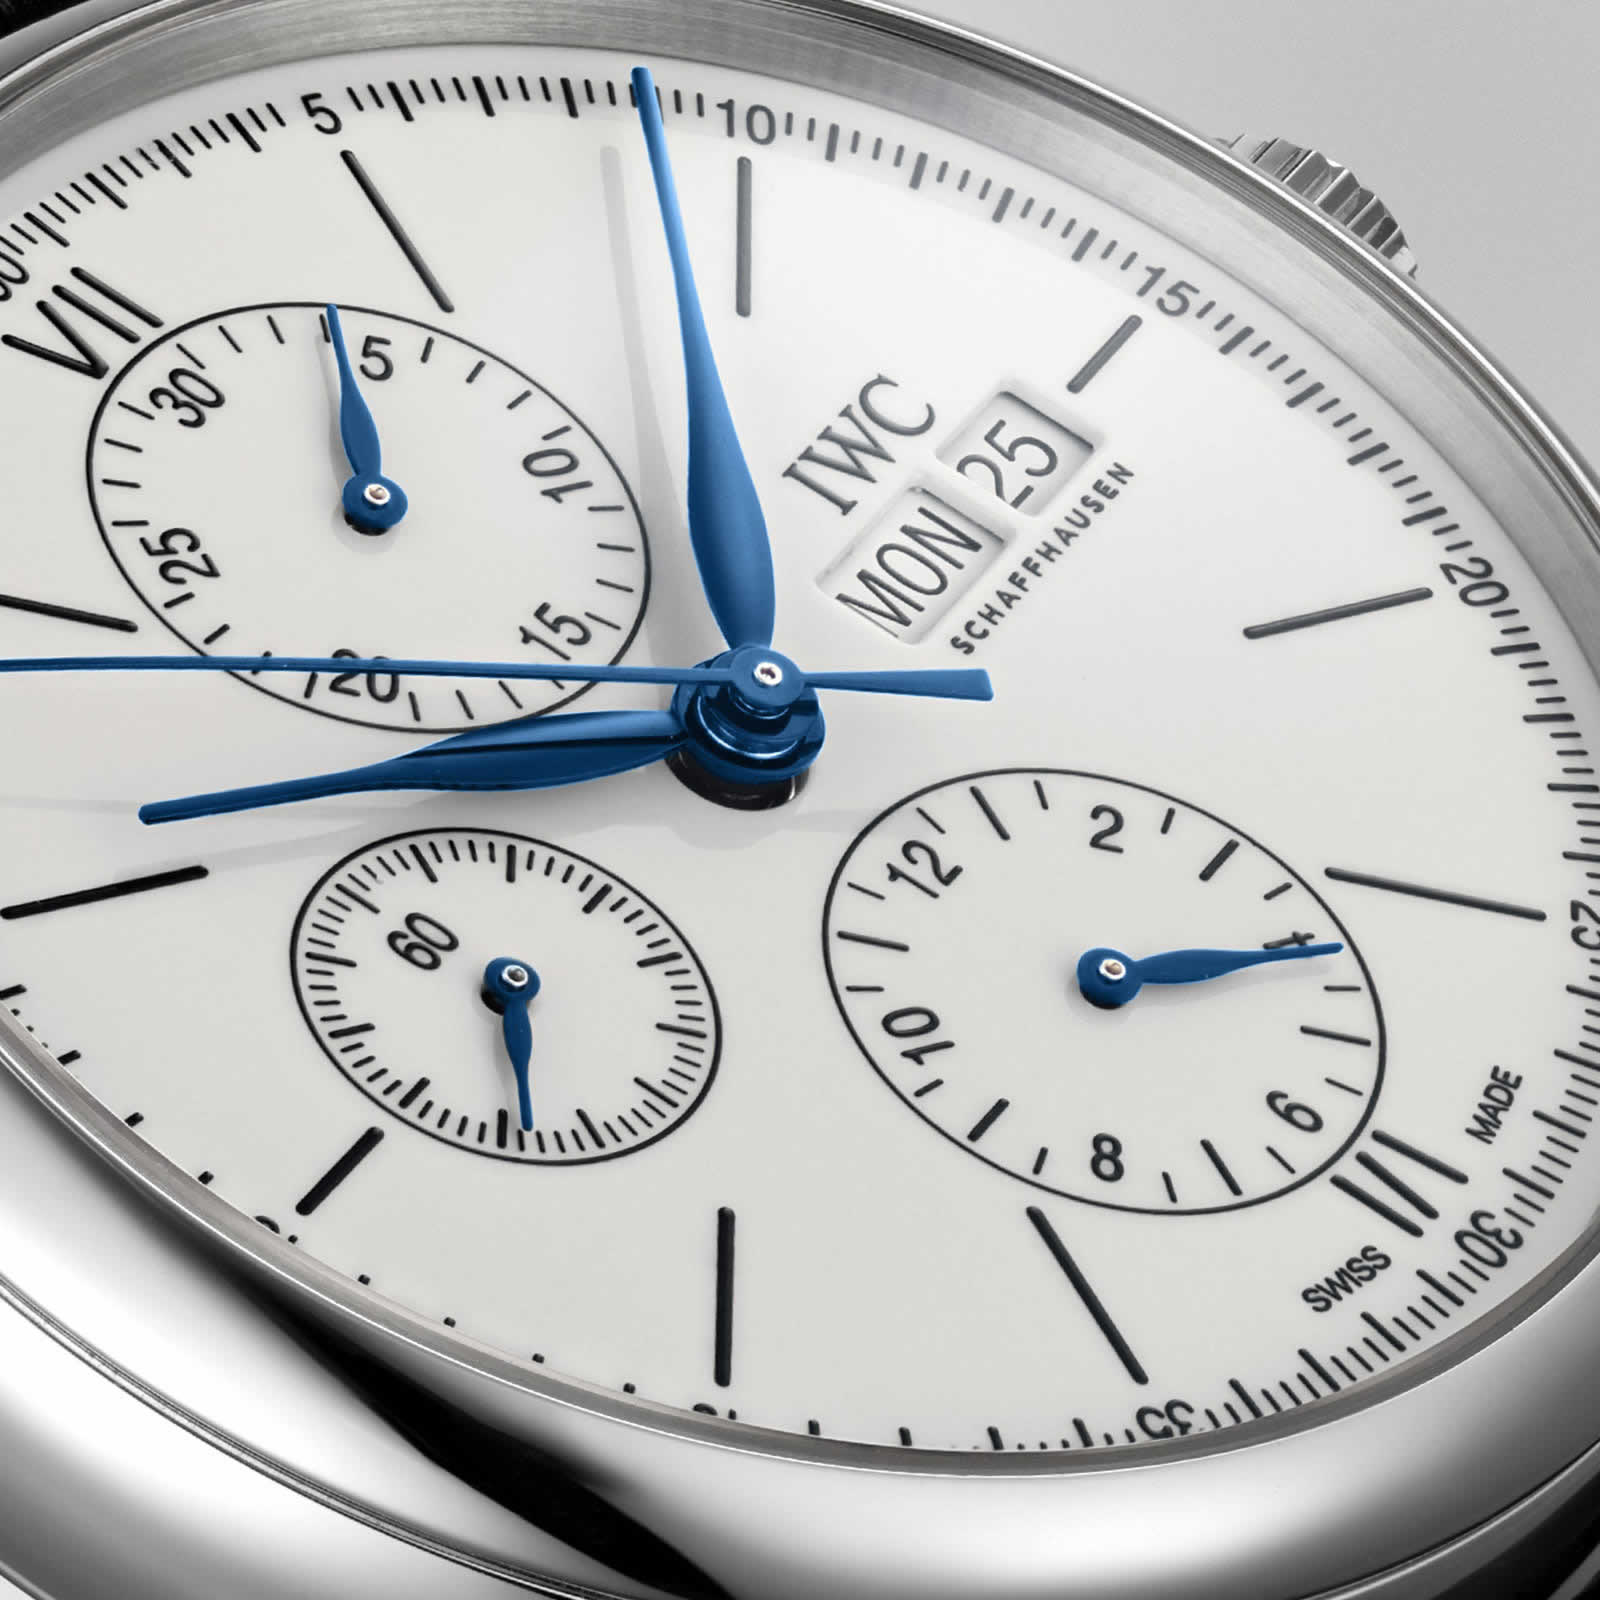 iwc-Portofino-Automatic-Edition-150-Years.jpg